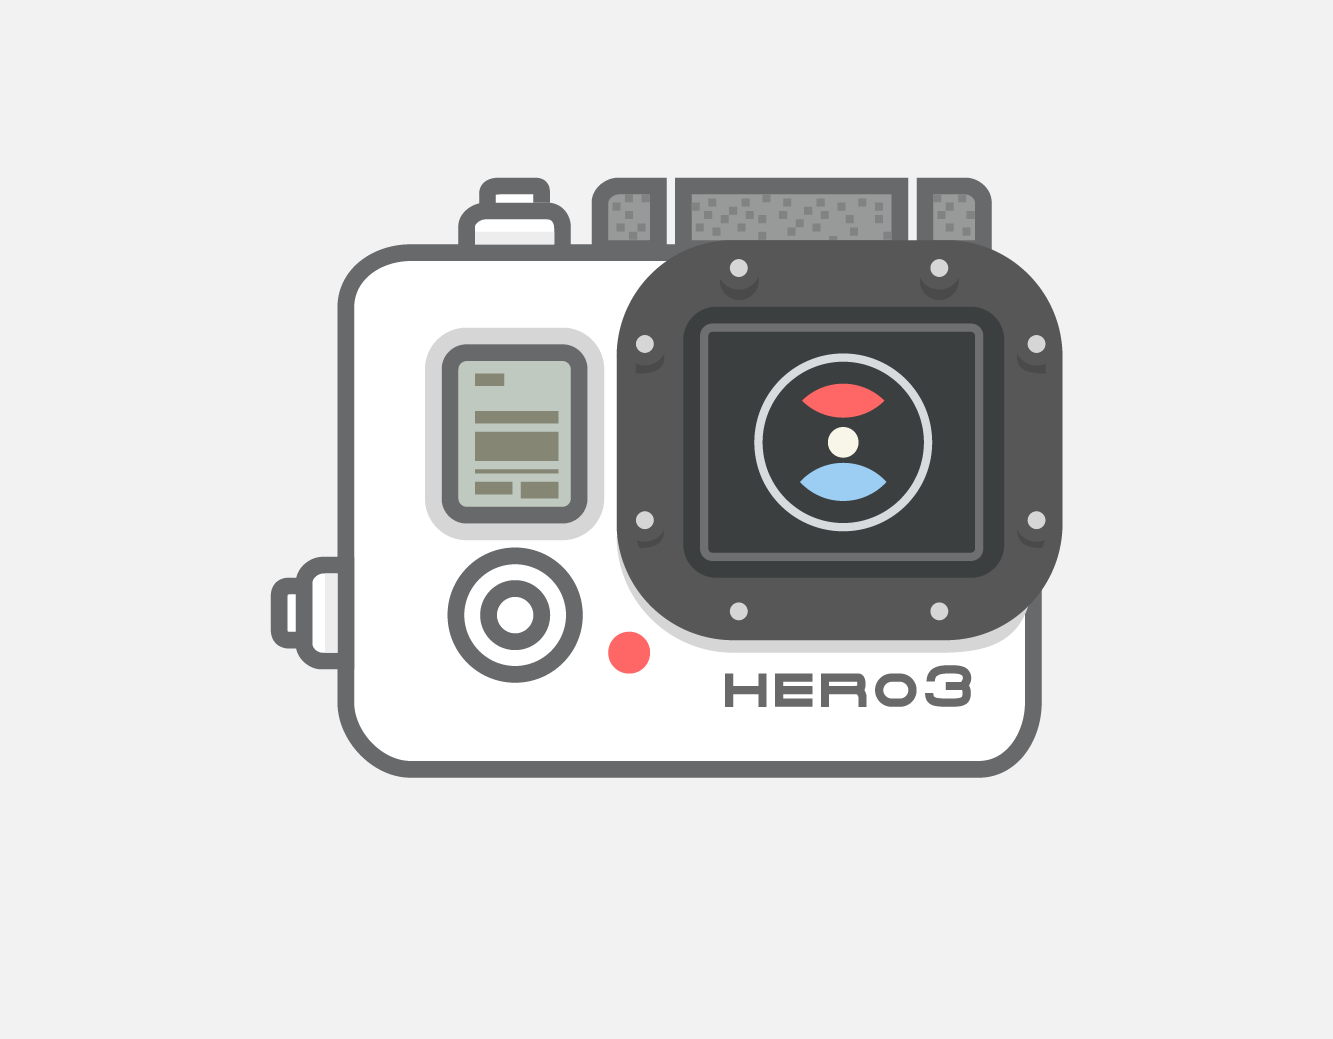 Video camera gopro vector icon illustrations on for Gopro studio templates download